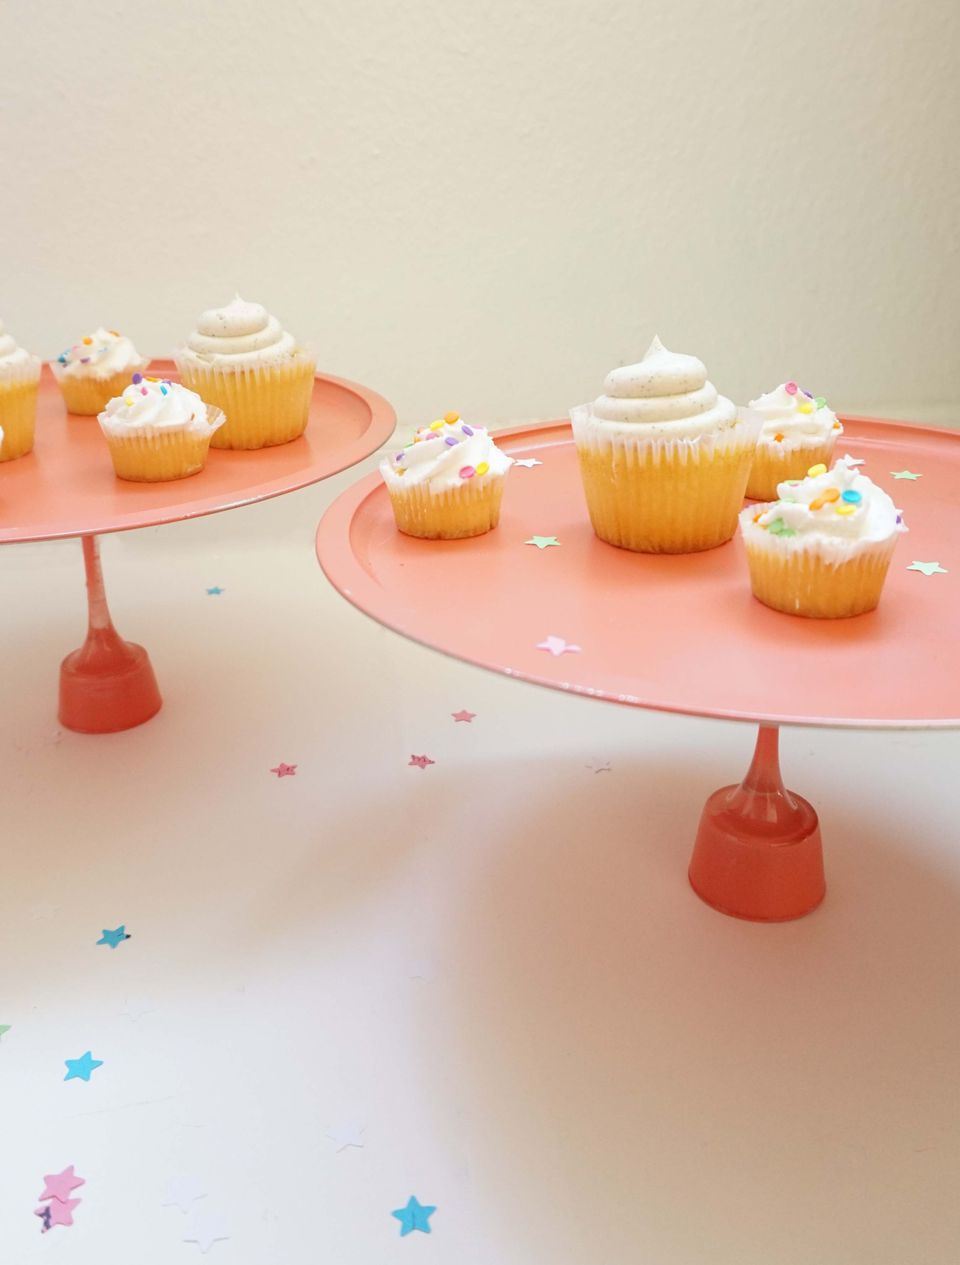 Pink DIY cupcake stand with vanilla cupcakes and confetti.